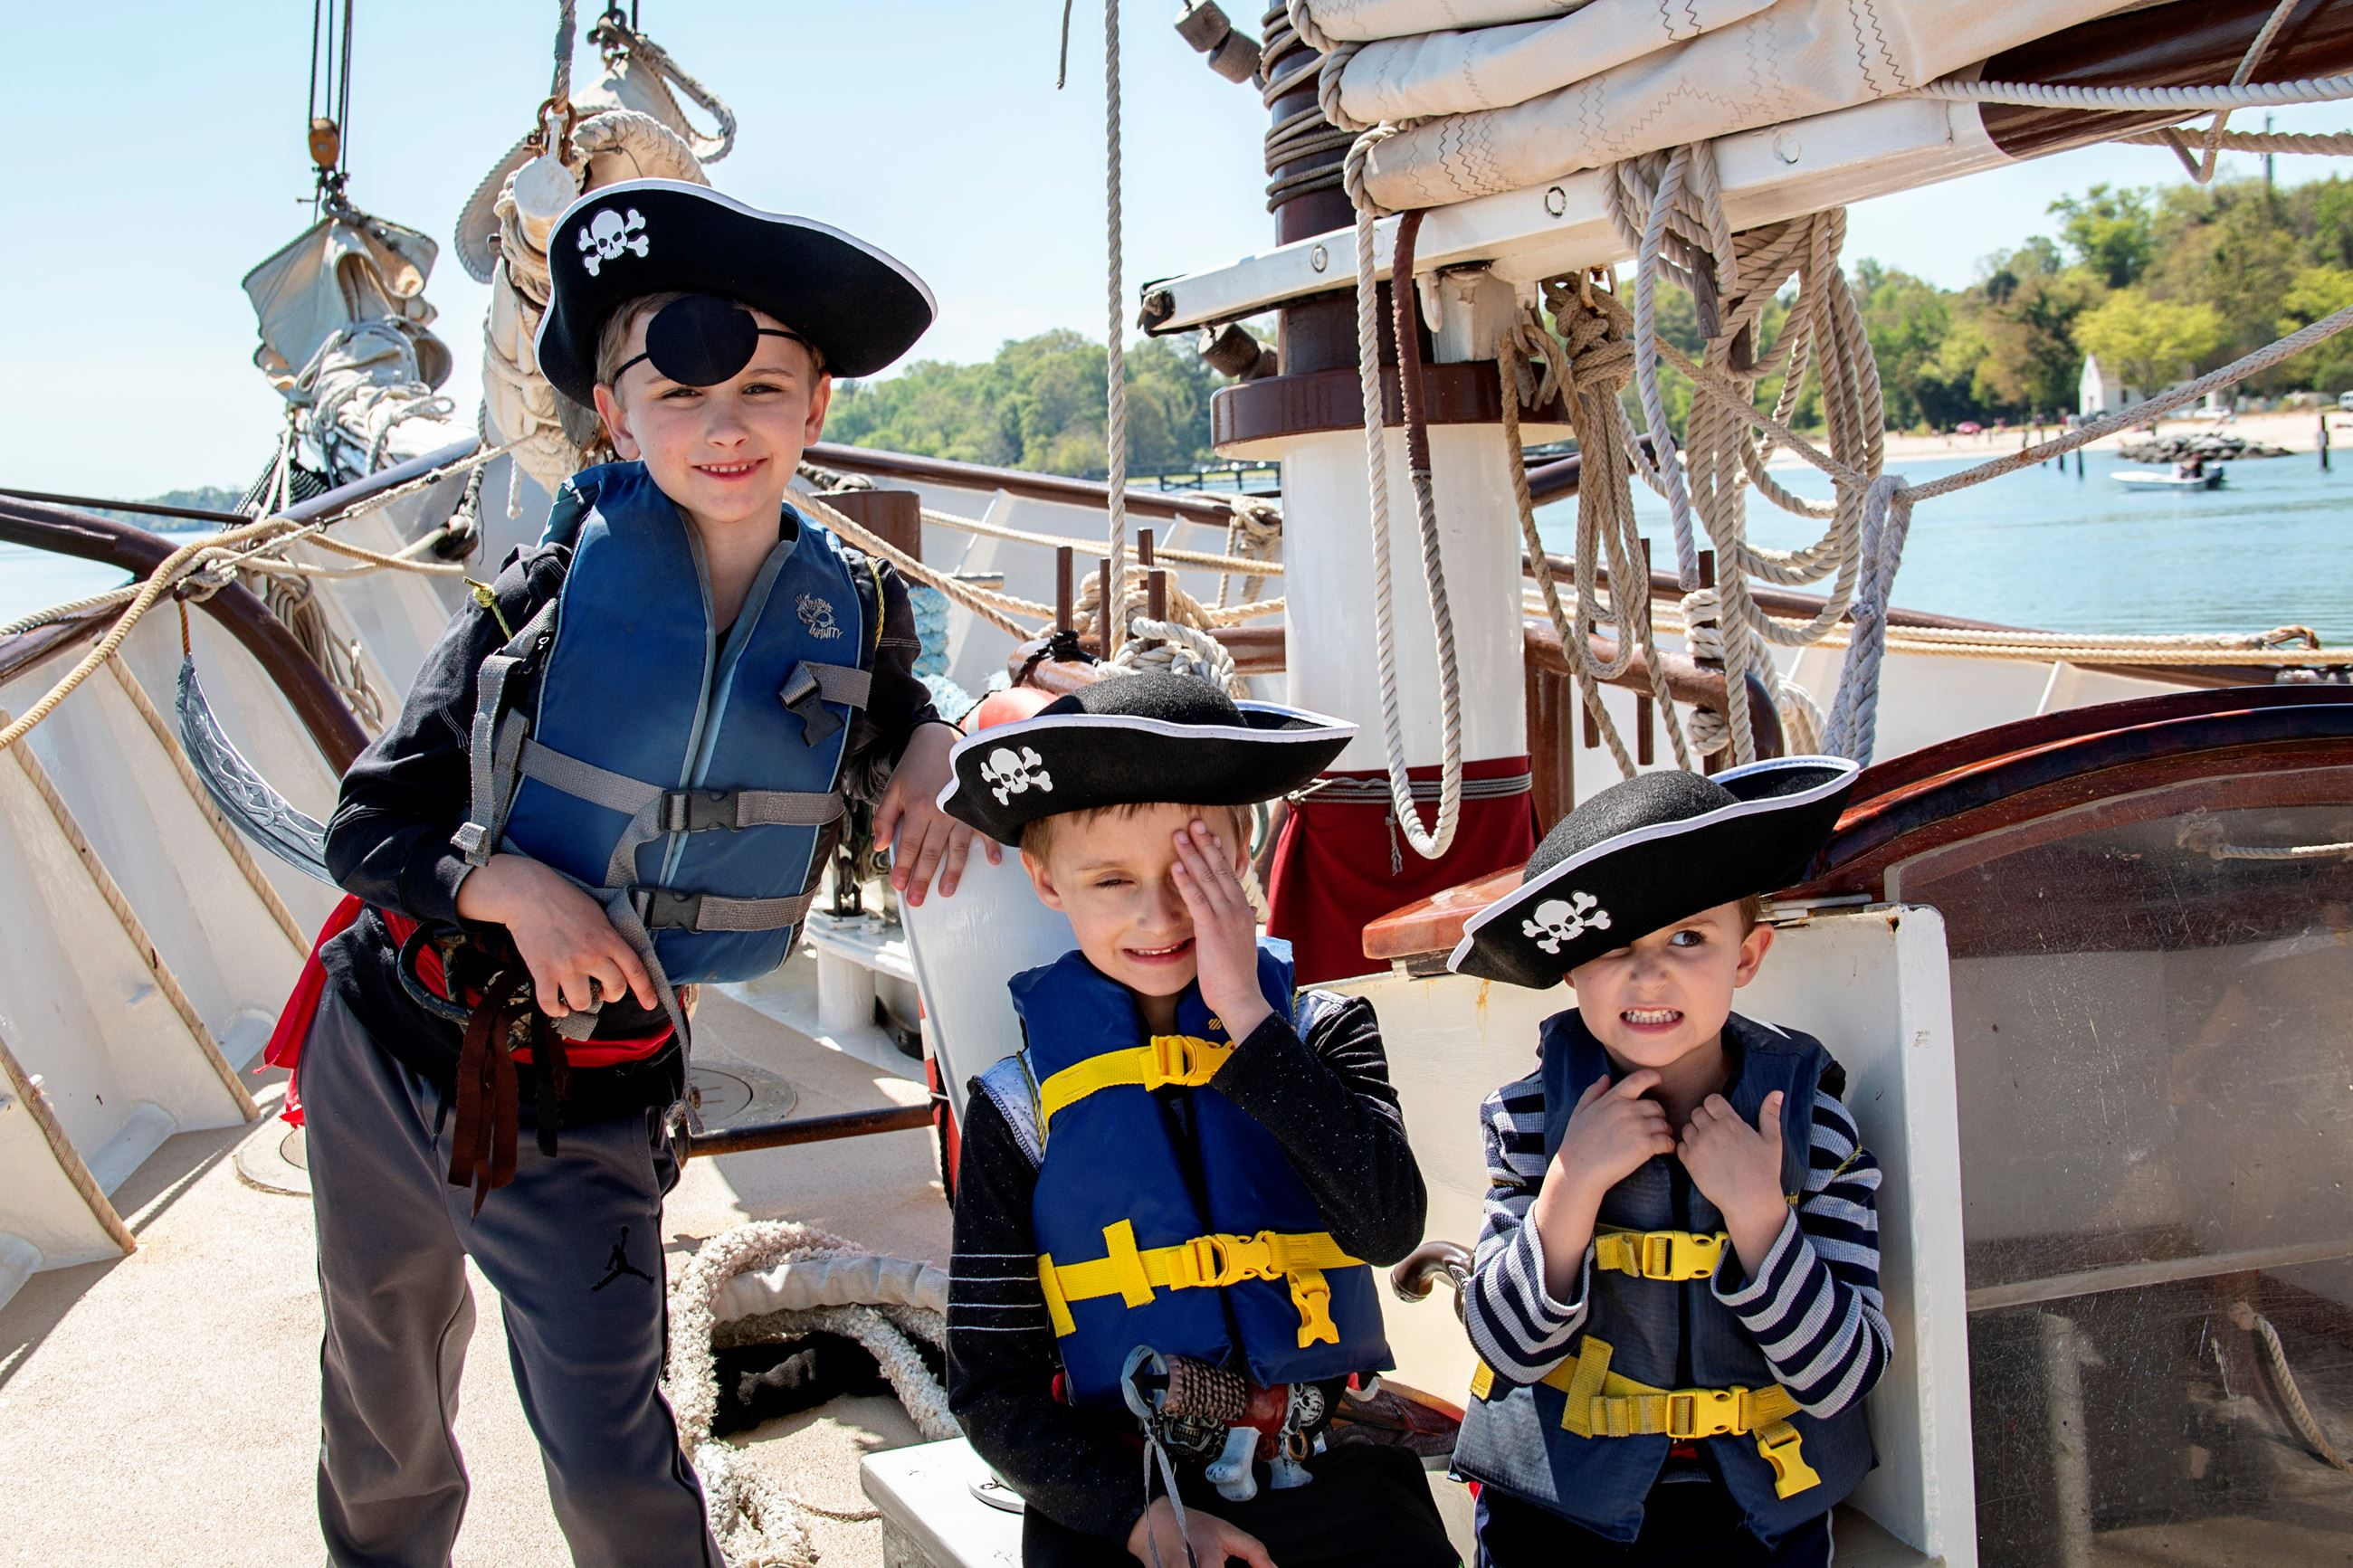 Kids posing with eye patches on Pirate Adventure Cruise